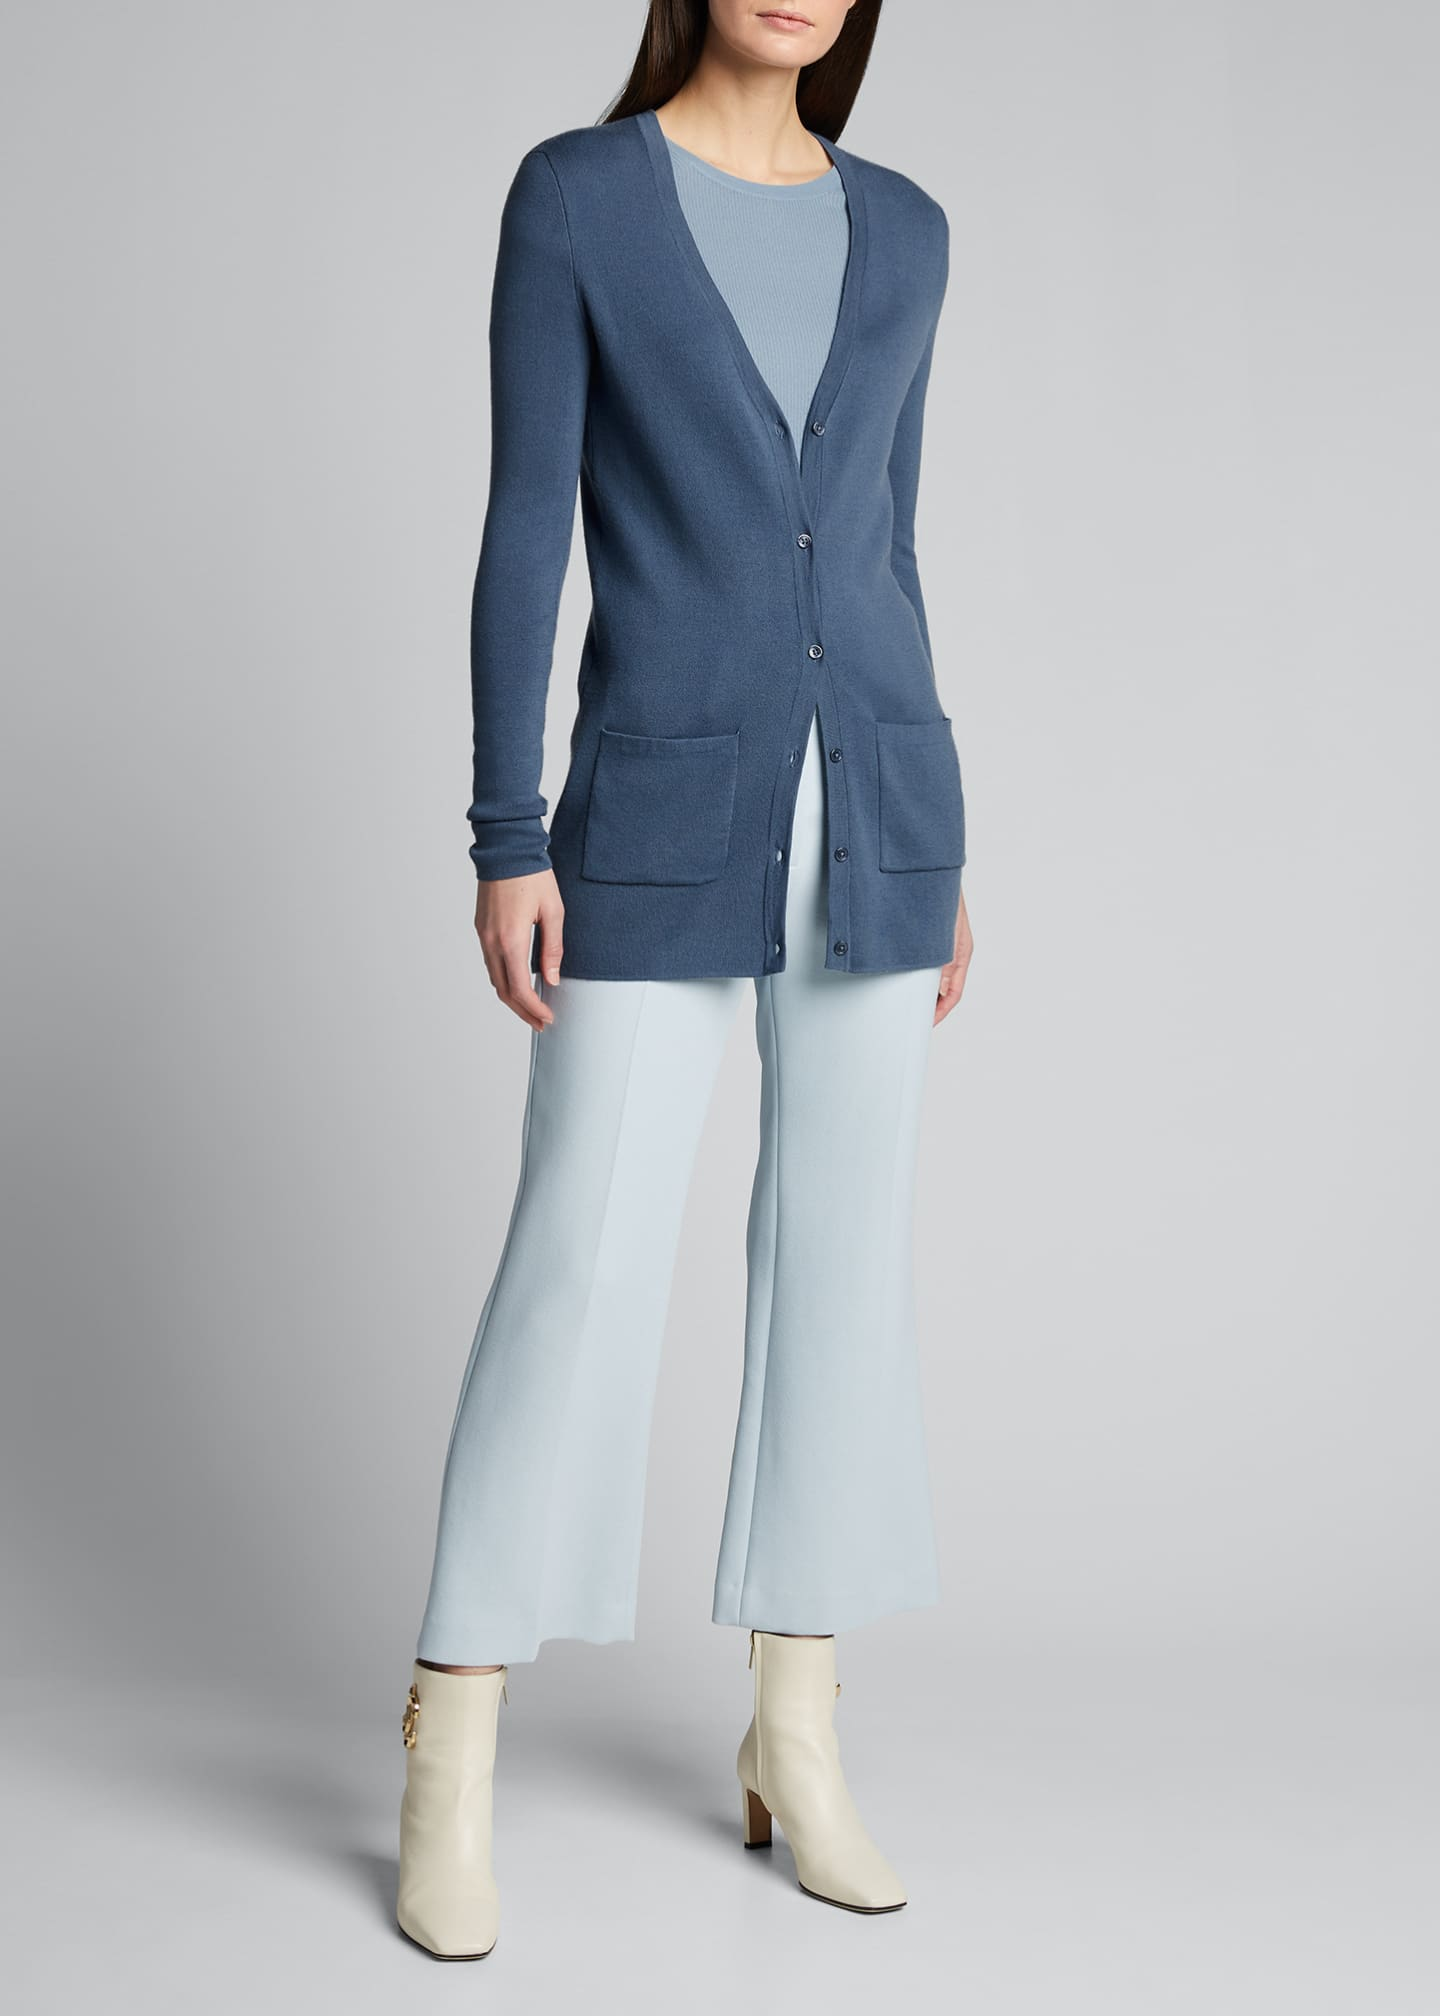 Image 1 of 5: Featherweight Cashmere Sweater